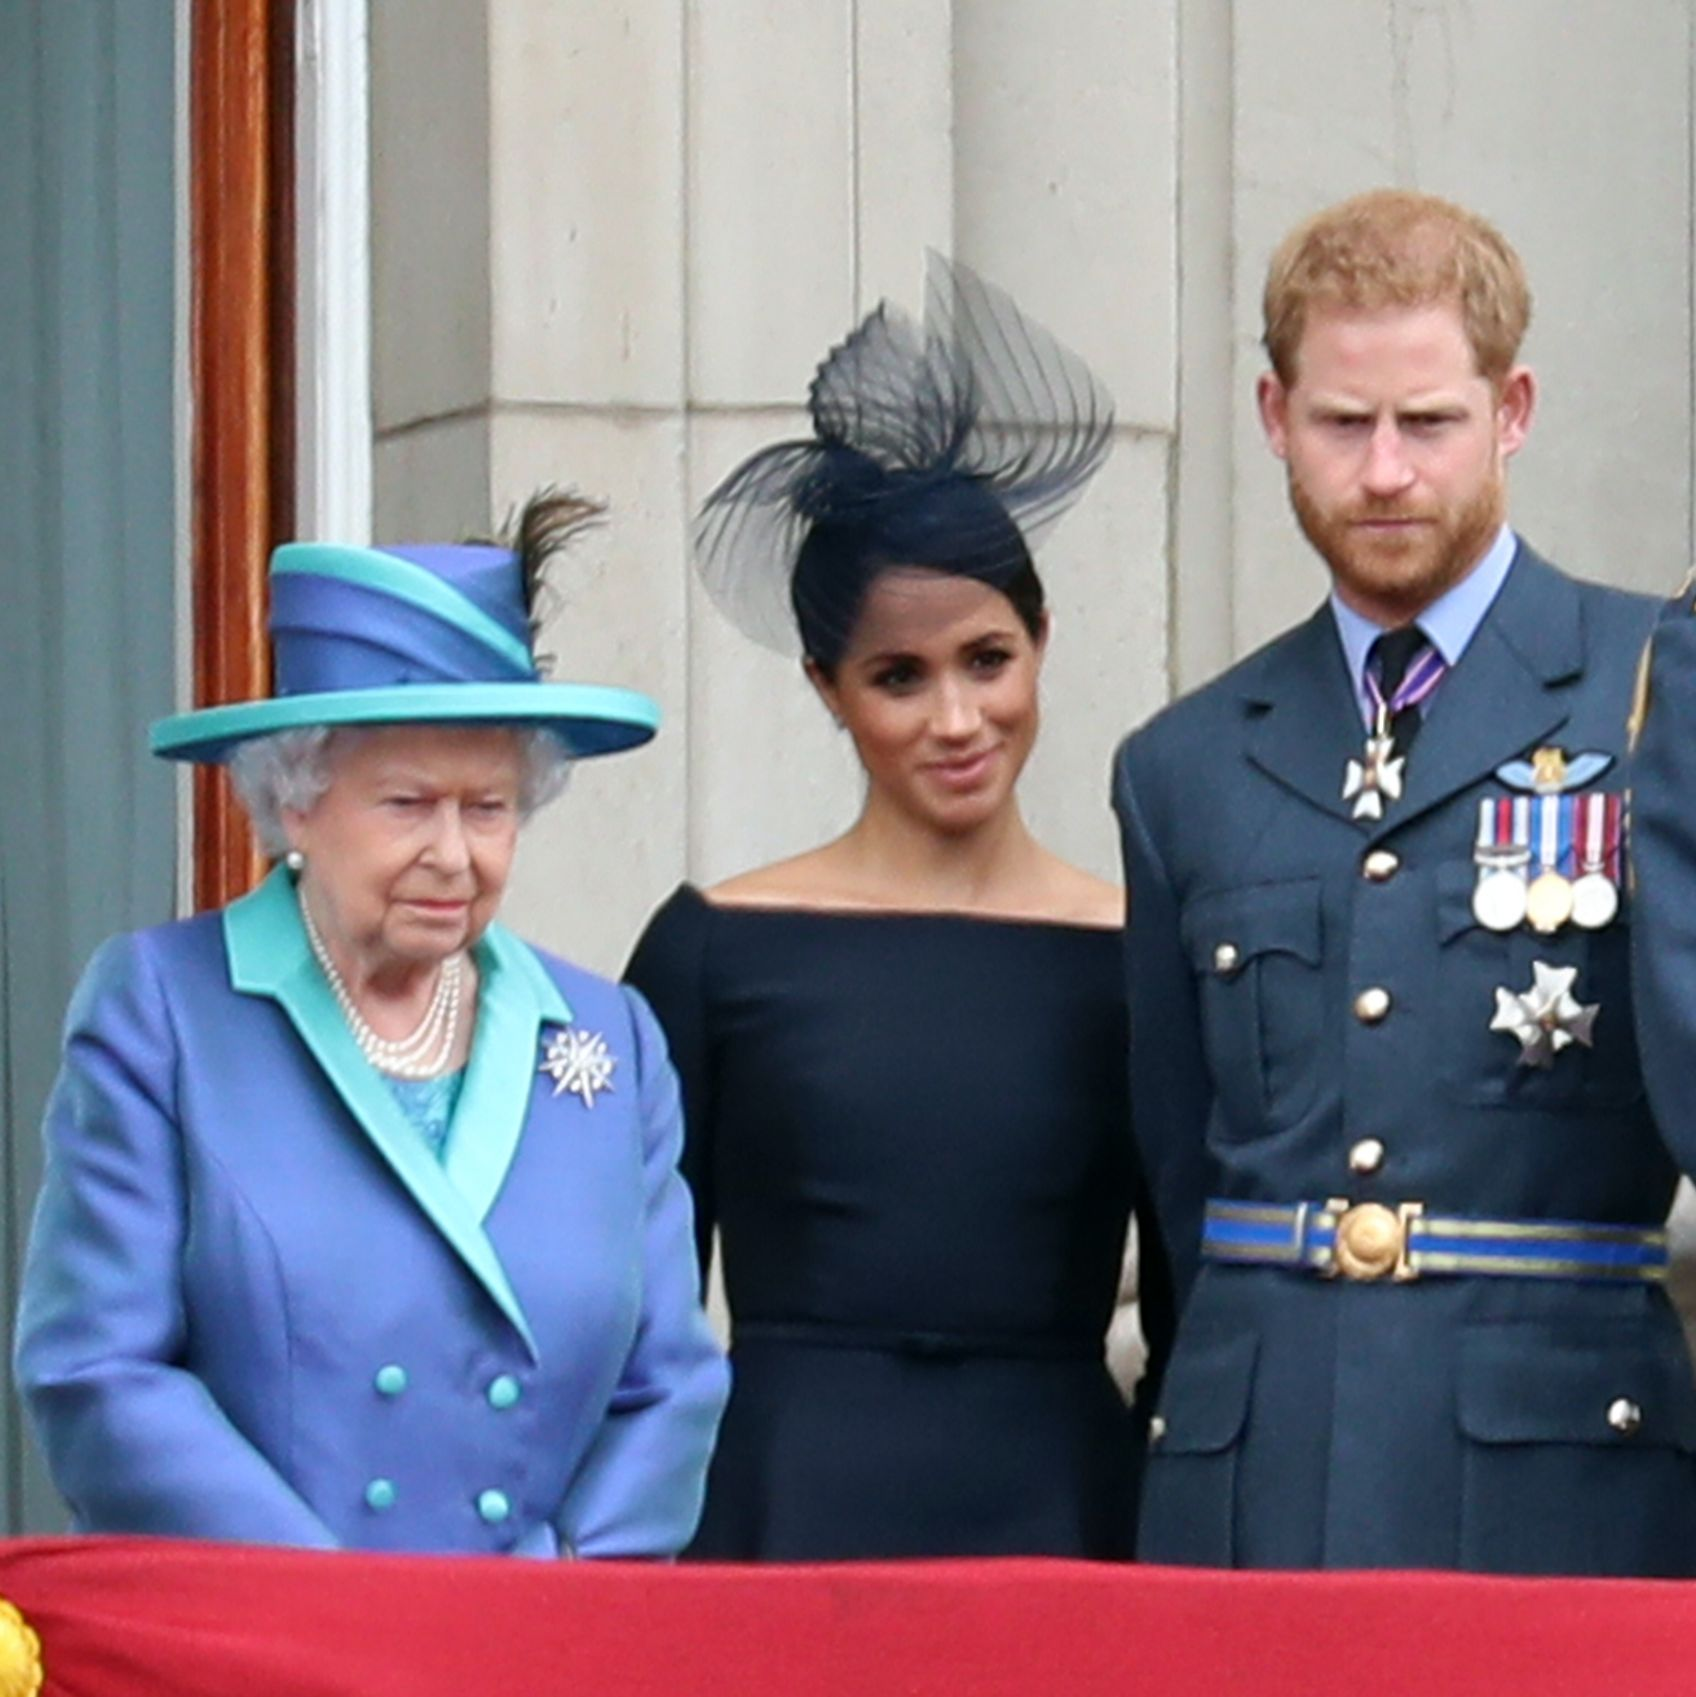 Meghan Markle and Prince Harry Asked for Independence and the Queen Said No